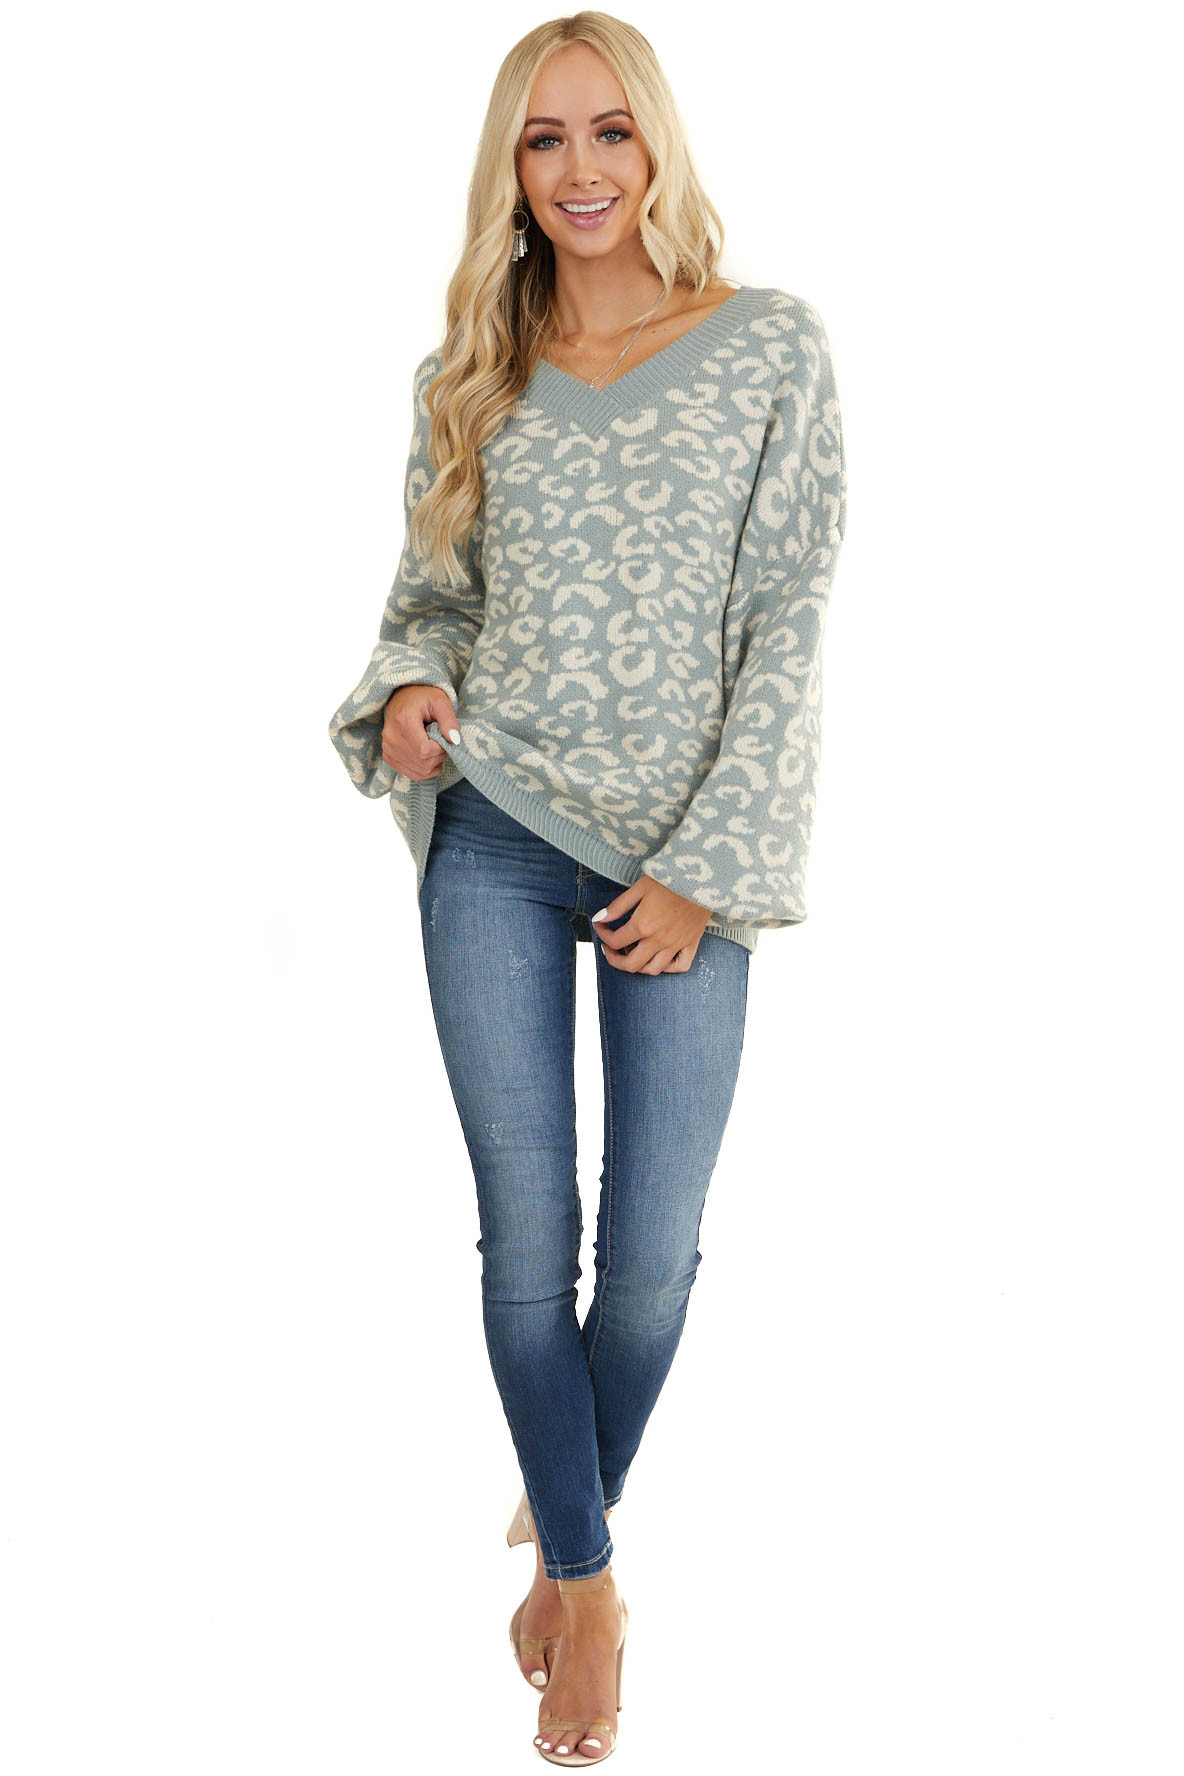 Faded Teal Leopard Print V Neck Sweater with Bubble Sleeves